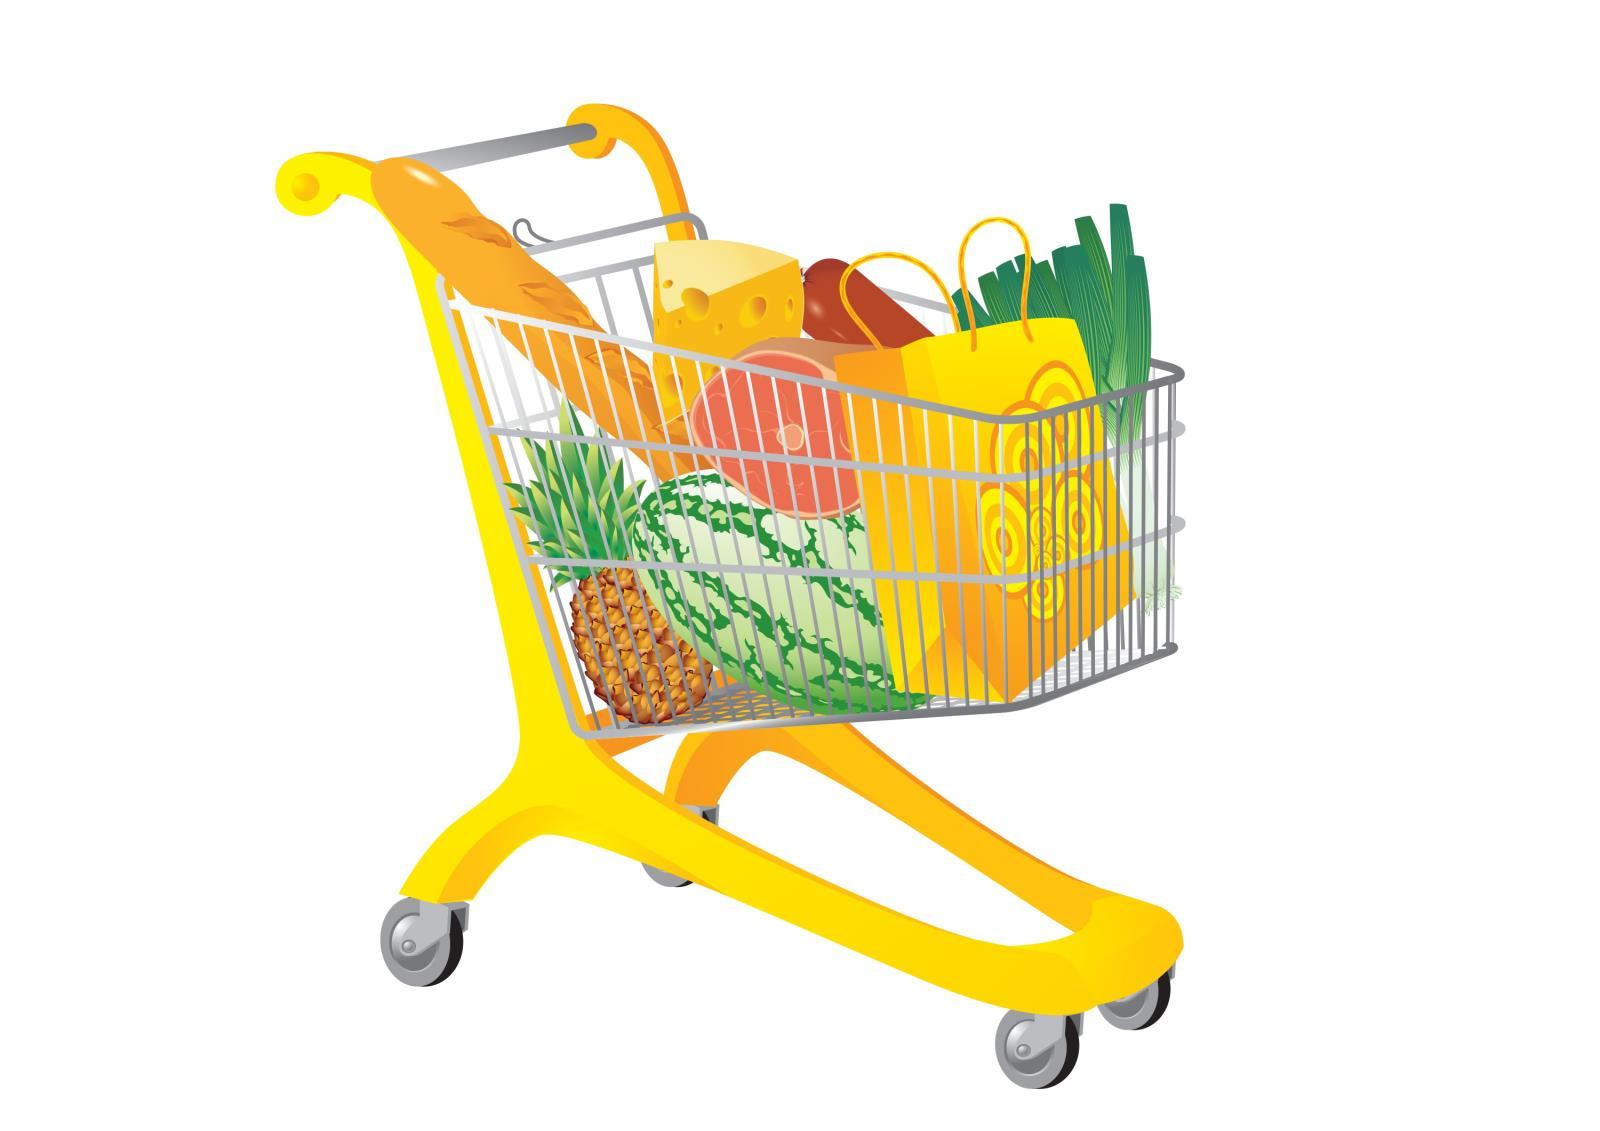 supermarket-cart-vector-illustration_fkK9-wd